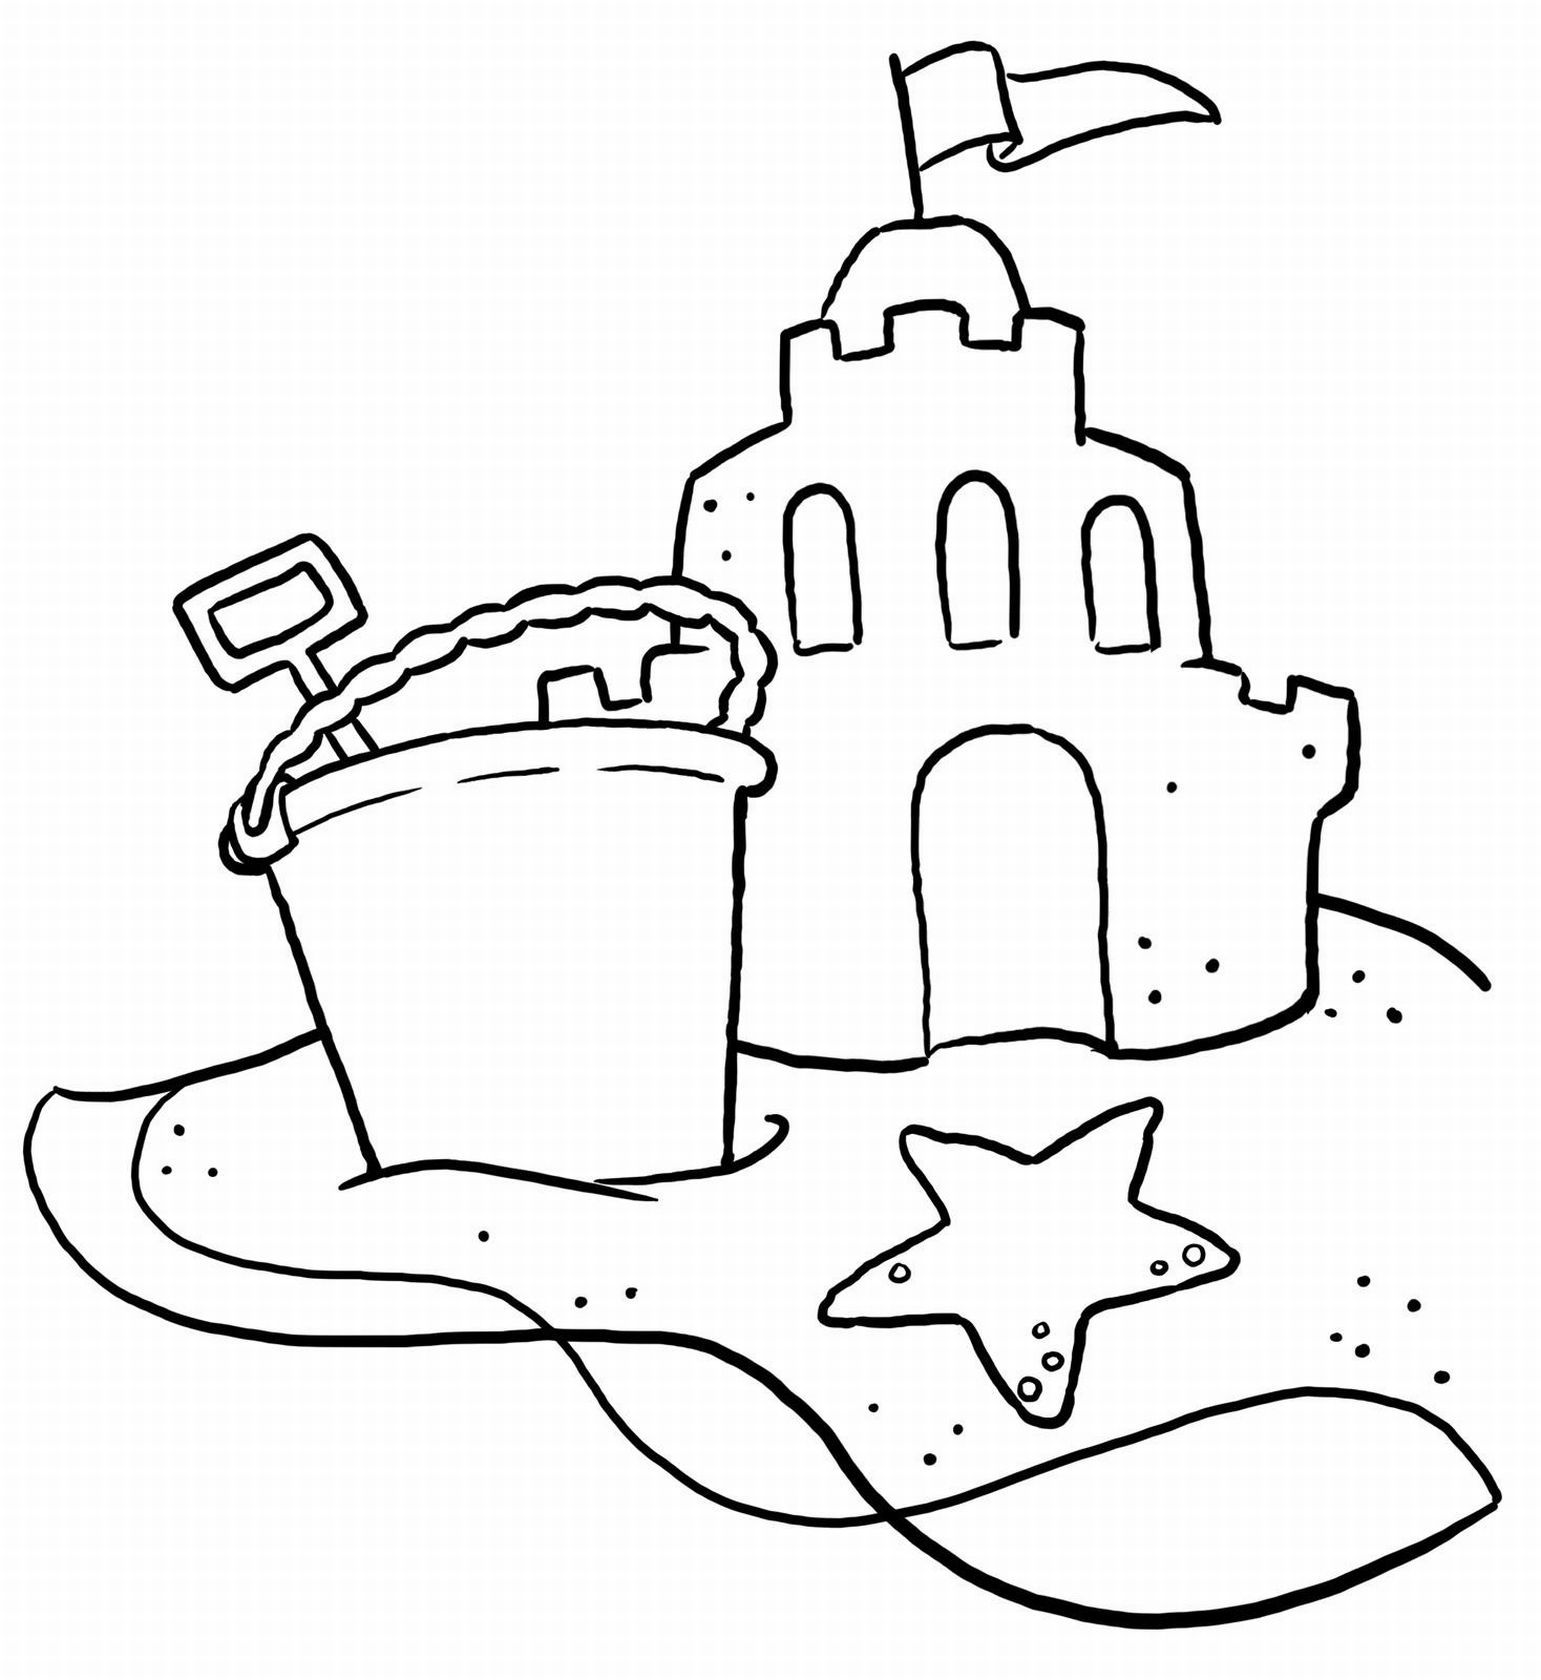 Beach Coloring Pages : 20 Free Printable Sheets to Color | Pinterest ...